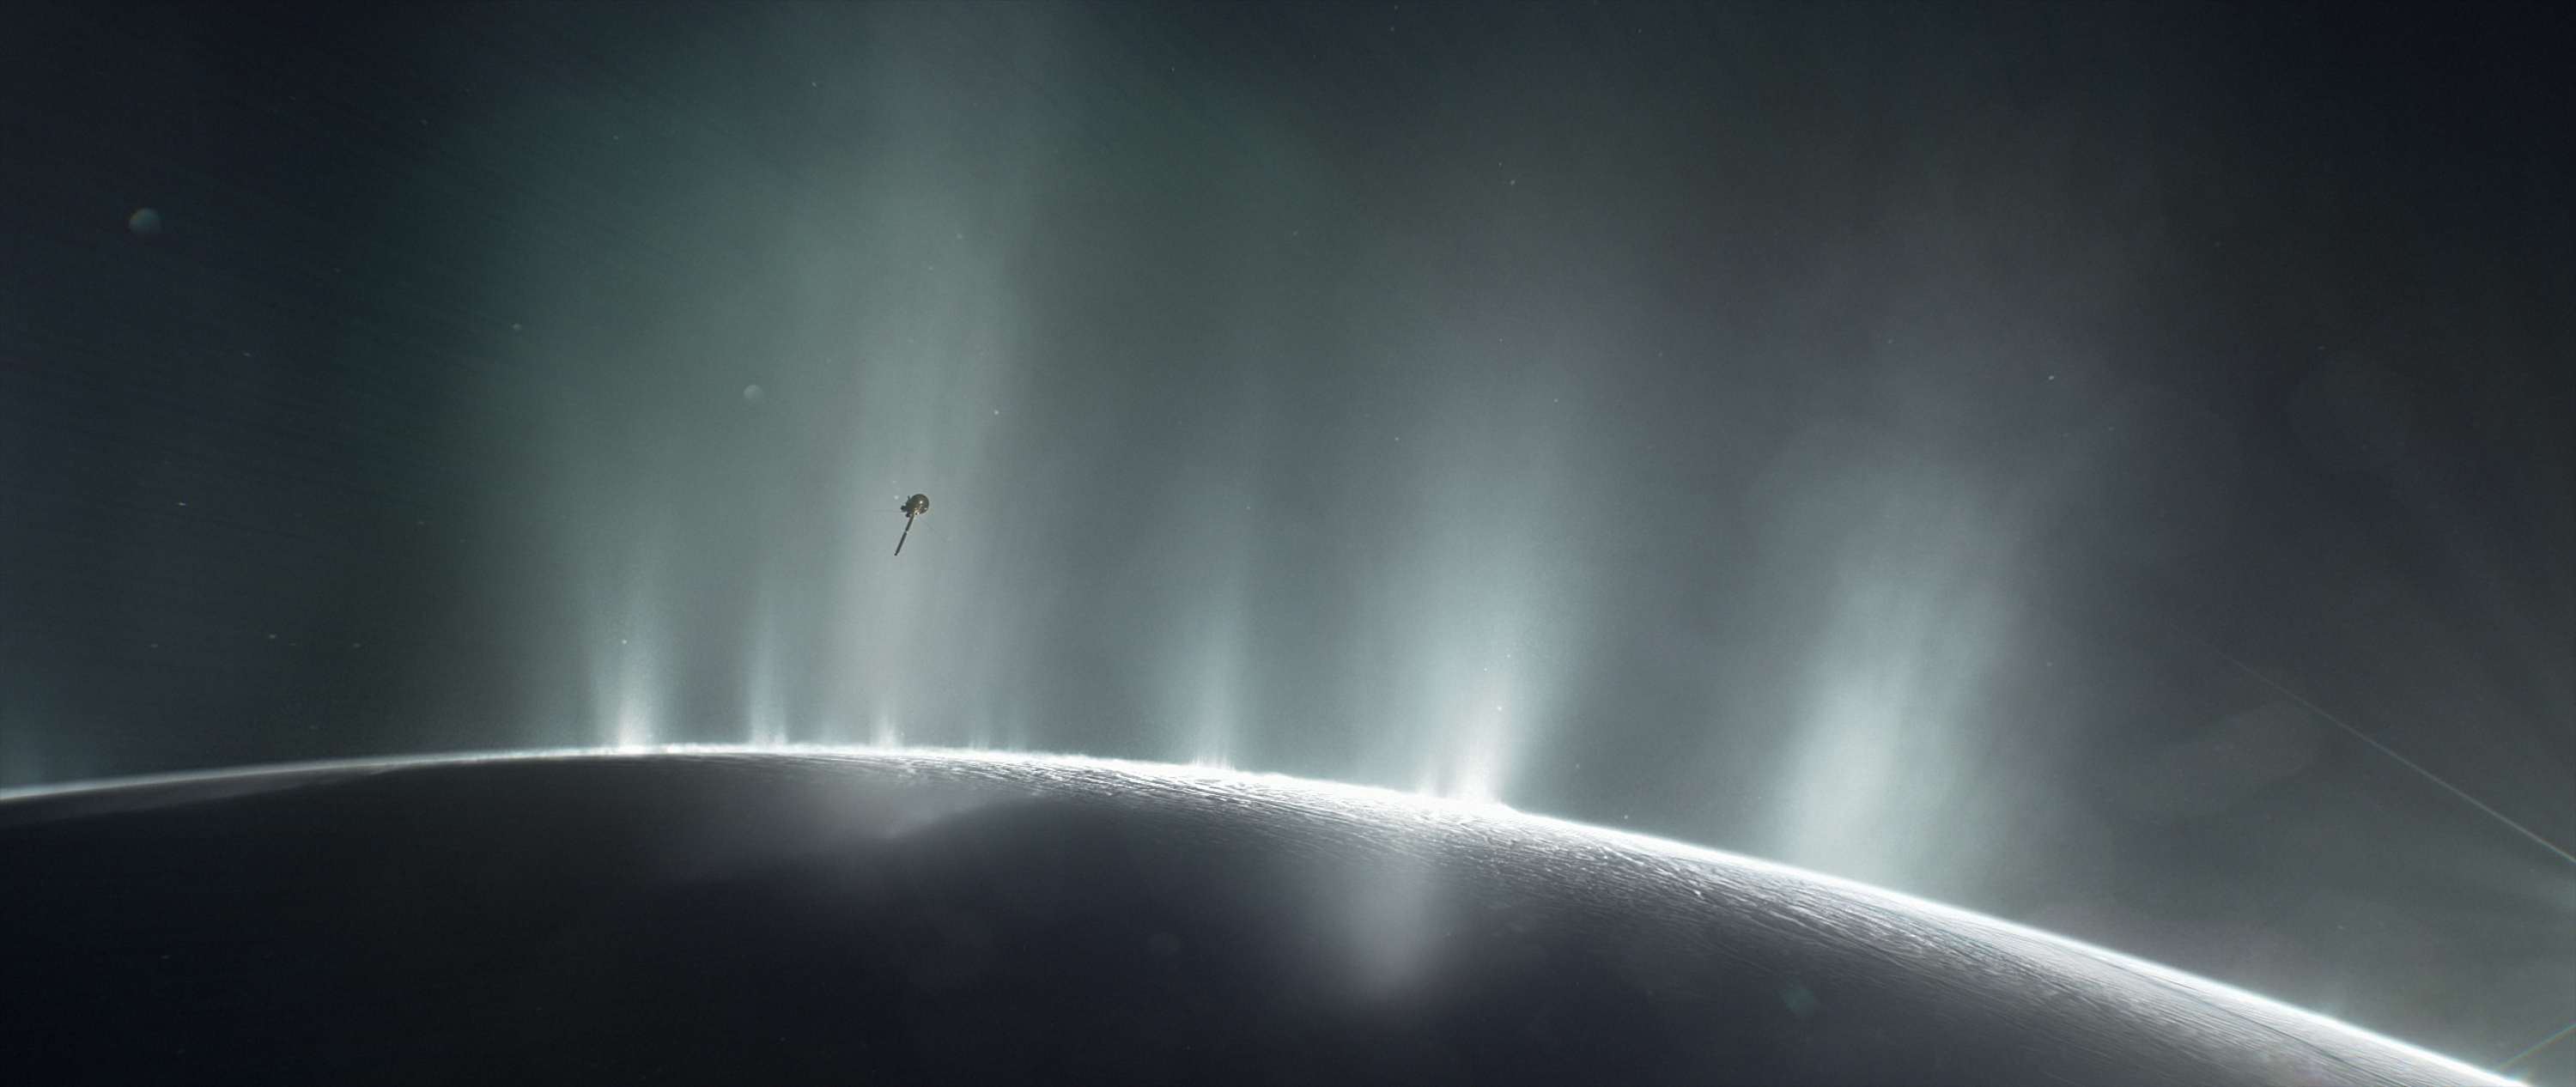 An artist's impression of the Cassini spacecraft flying through Enceladus' water jets.